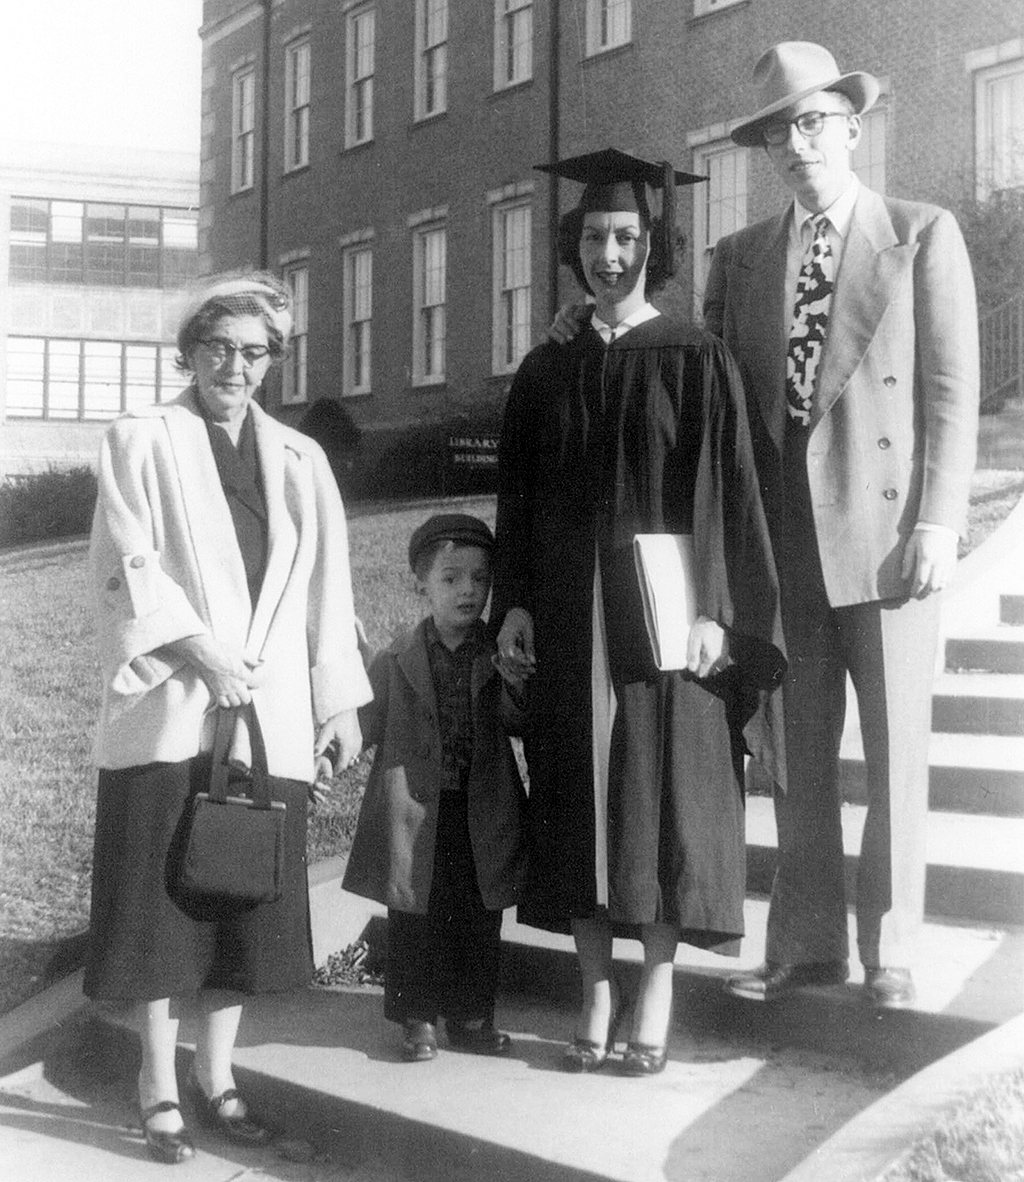 Helen Schlueter and family at her graduation